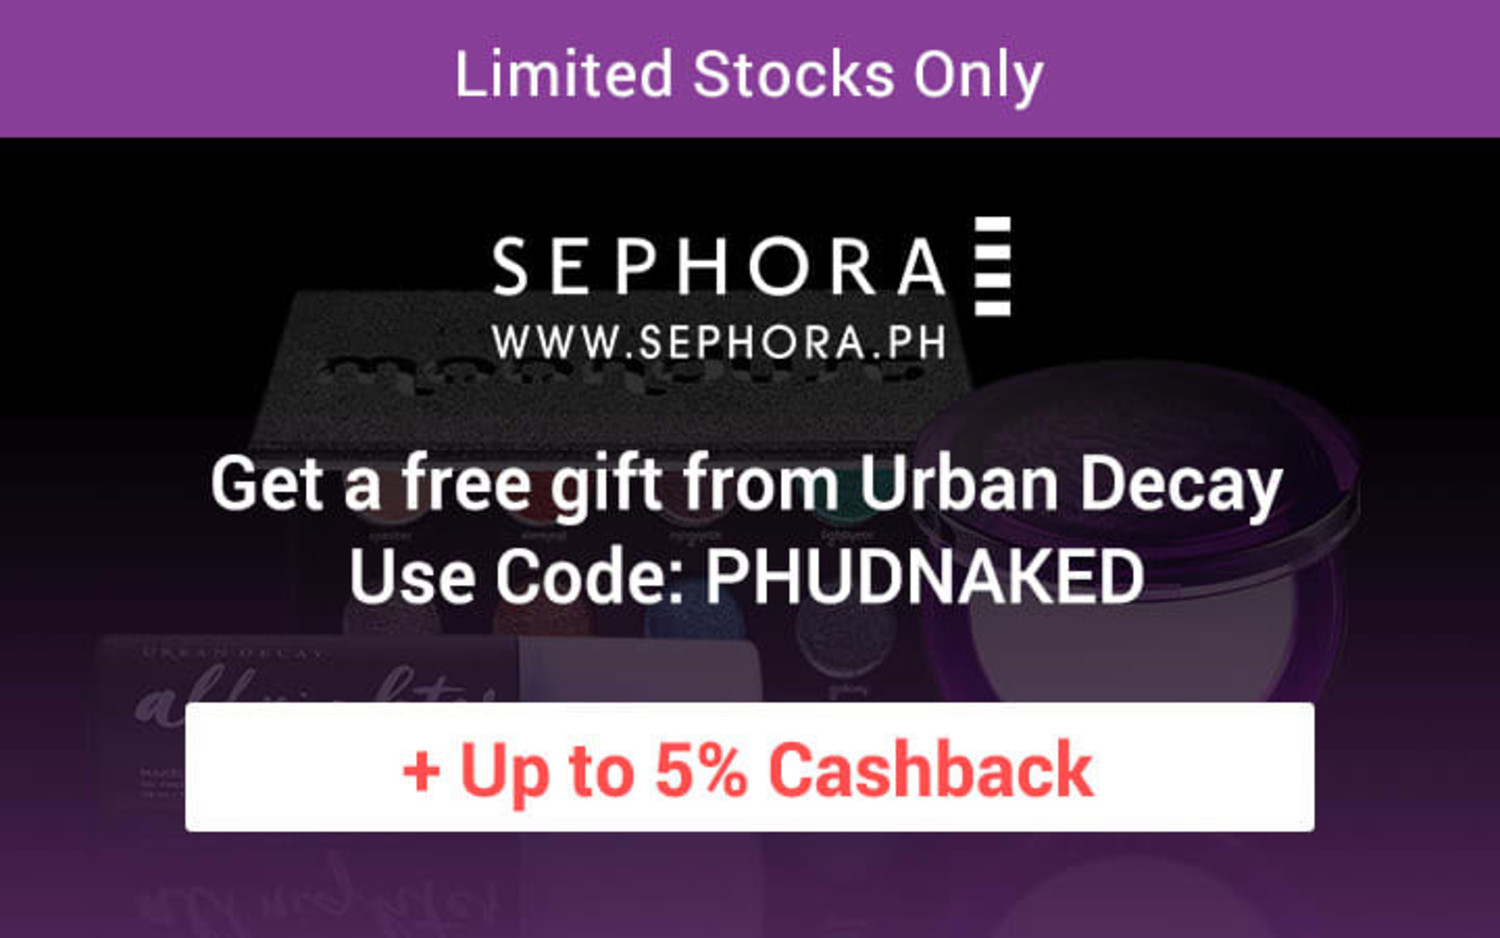 Sephora Get a free gift from Urban Decay (Min. spend P3,500) Use code: PHUDNAKED + Up to 5% Cashback